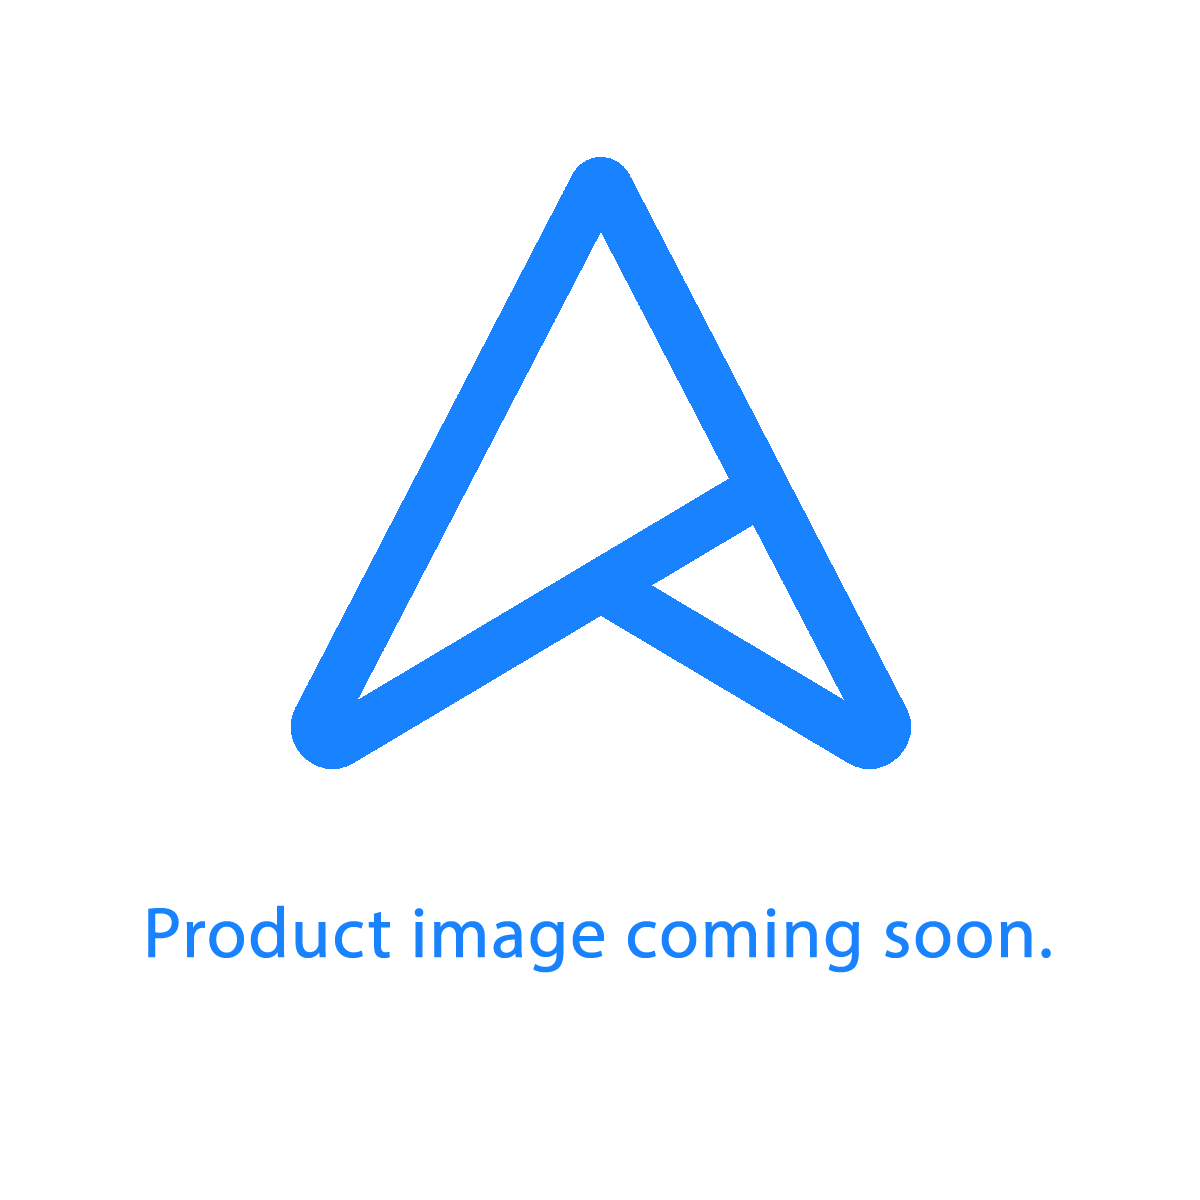 ROG Zephyrus G14 GA401II-GTX1650Ti with AniMe Matrix™